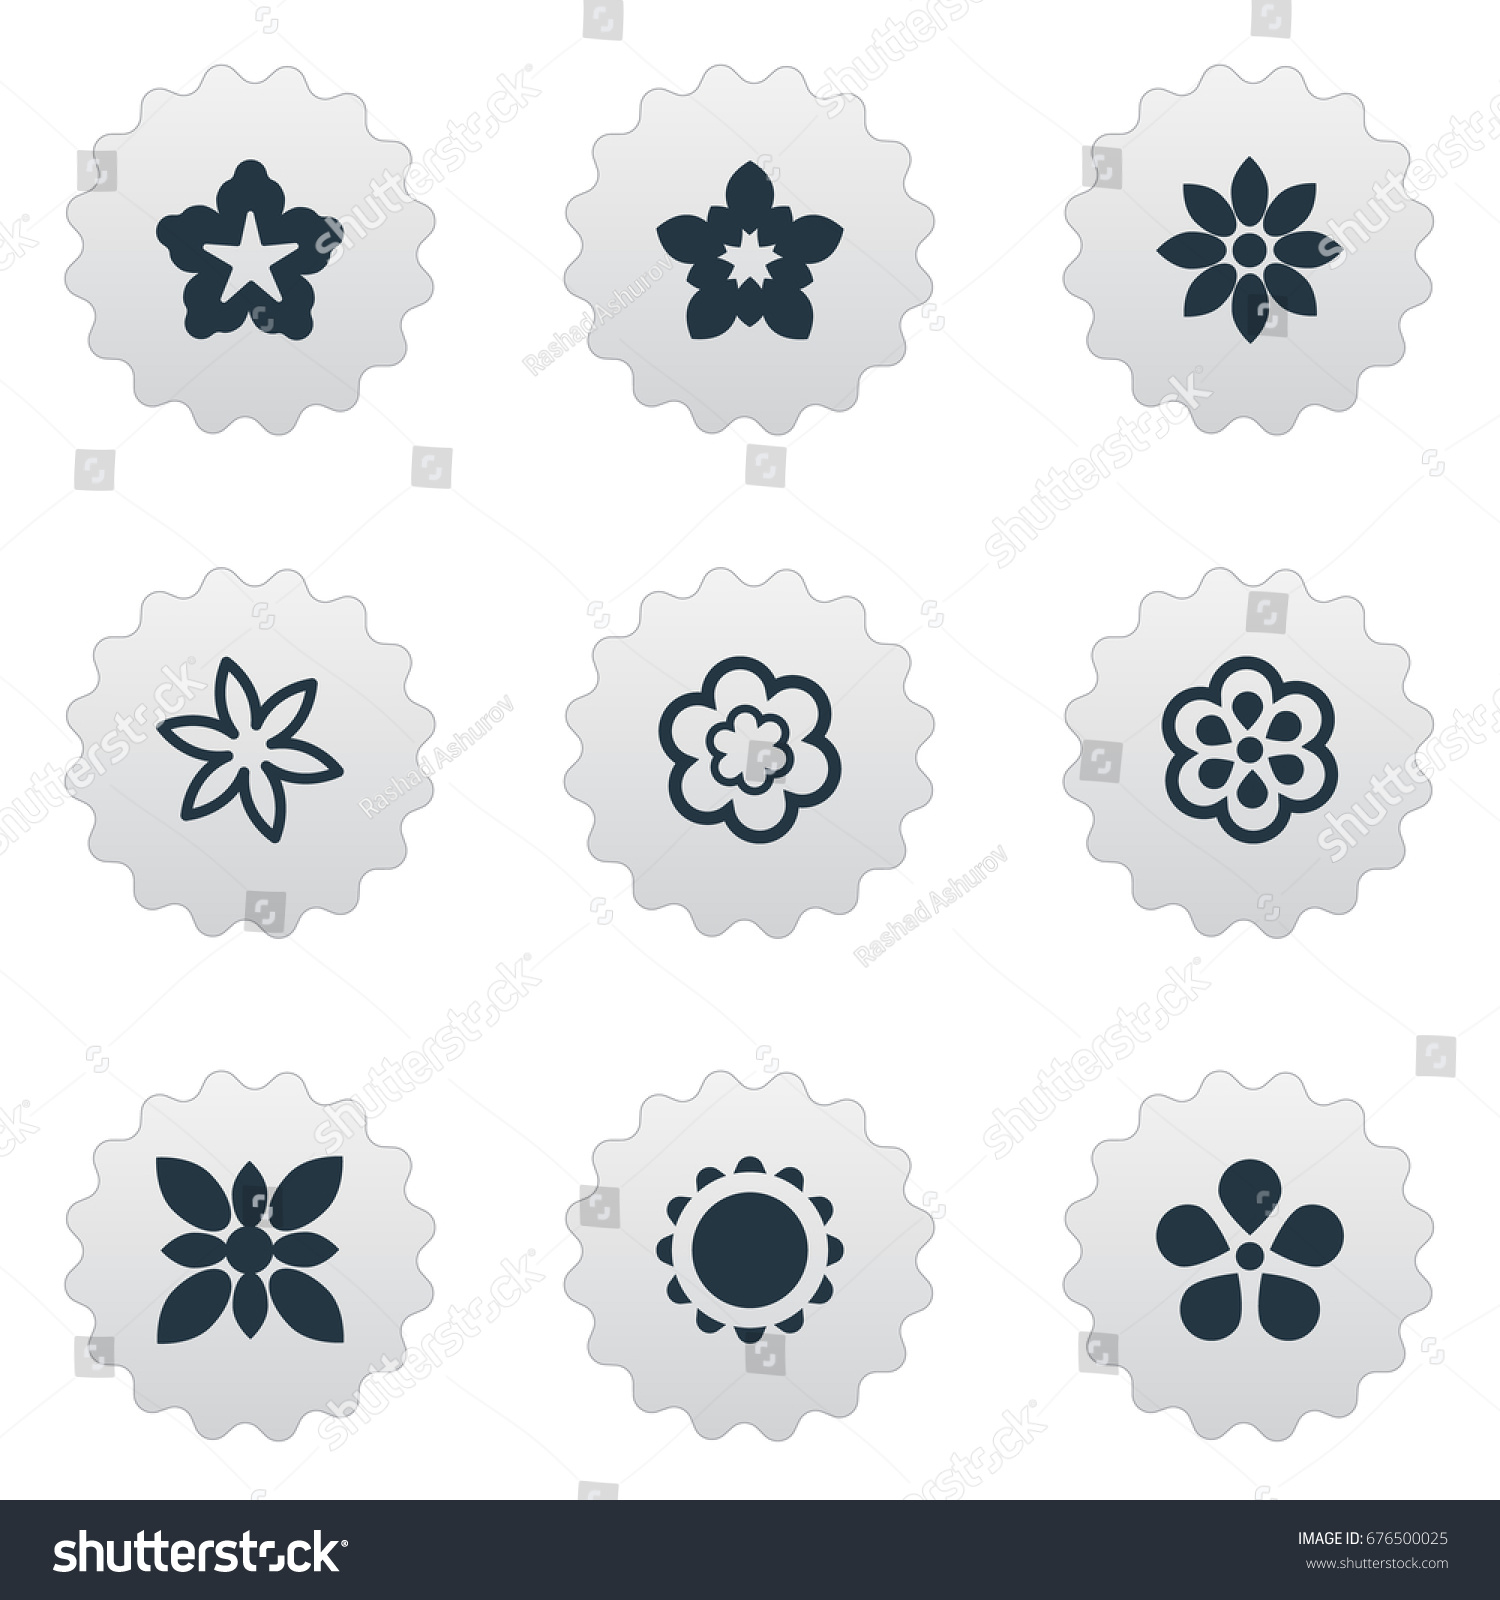 Vector Illustration Set Simple Flower Icons Stock Vector 676500025 ...